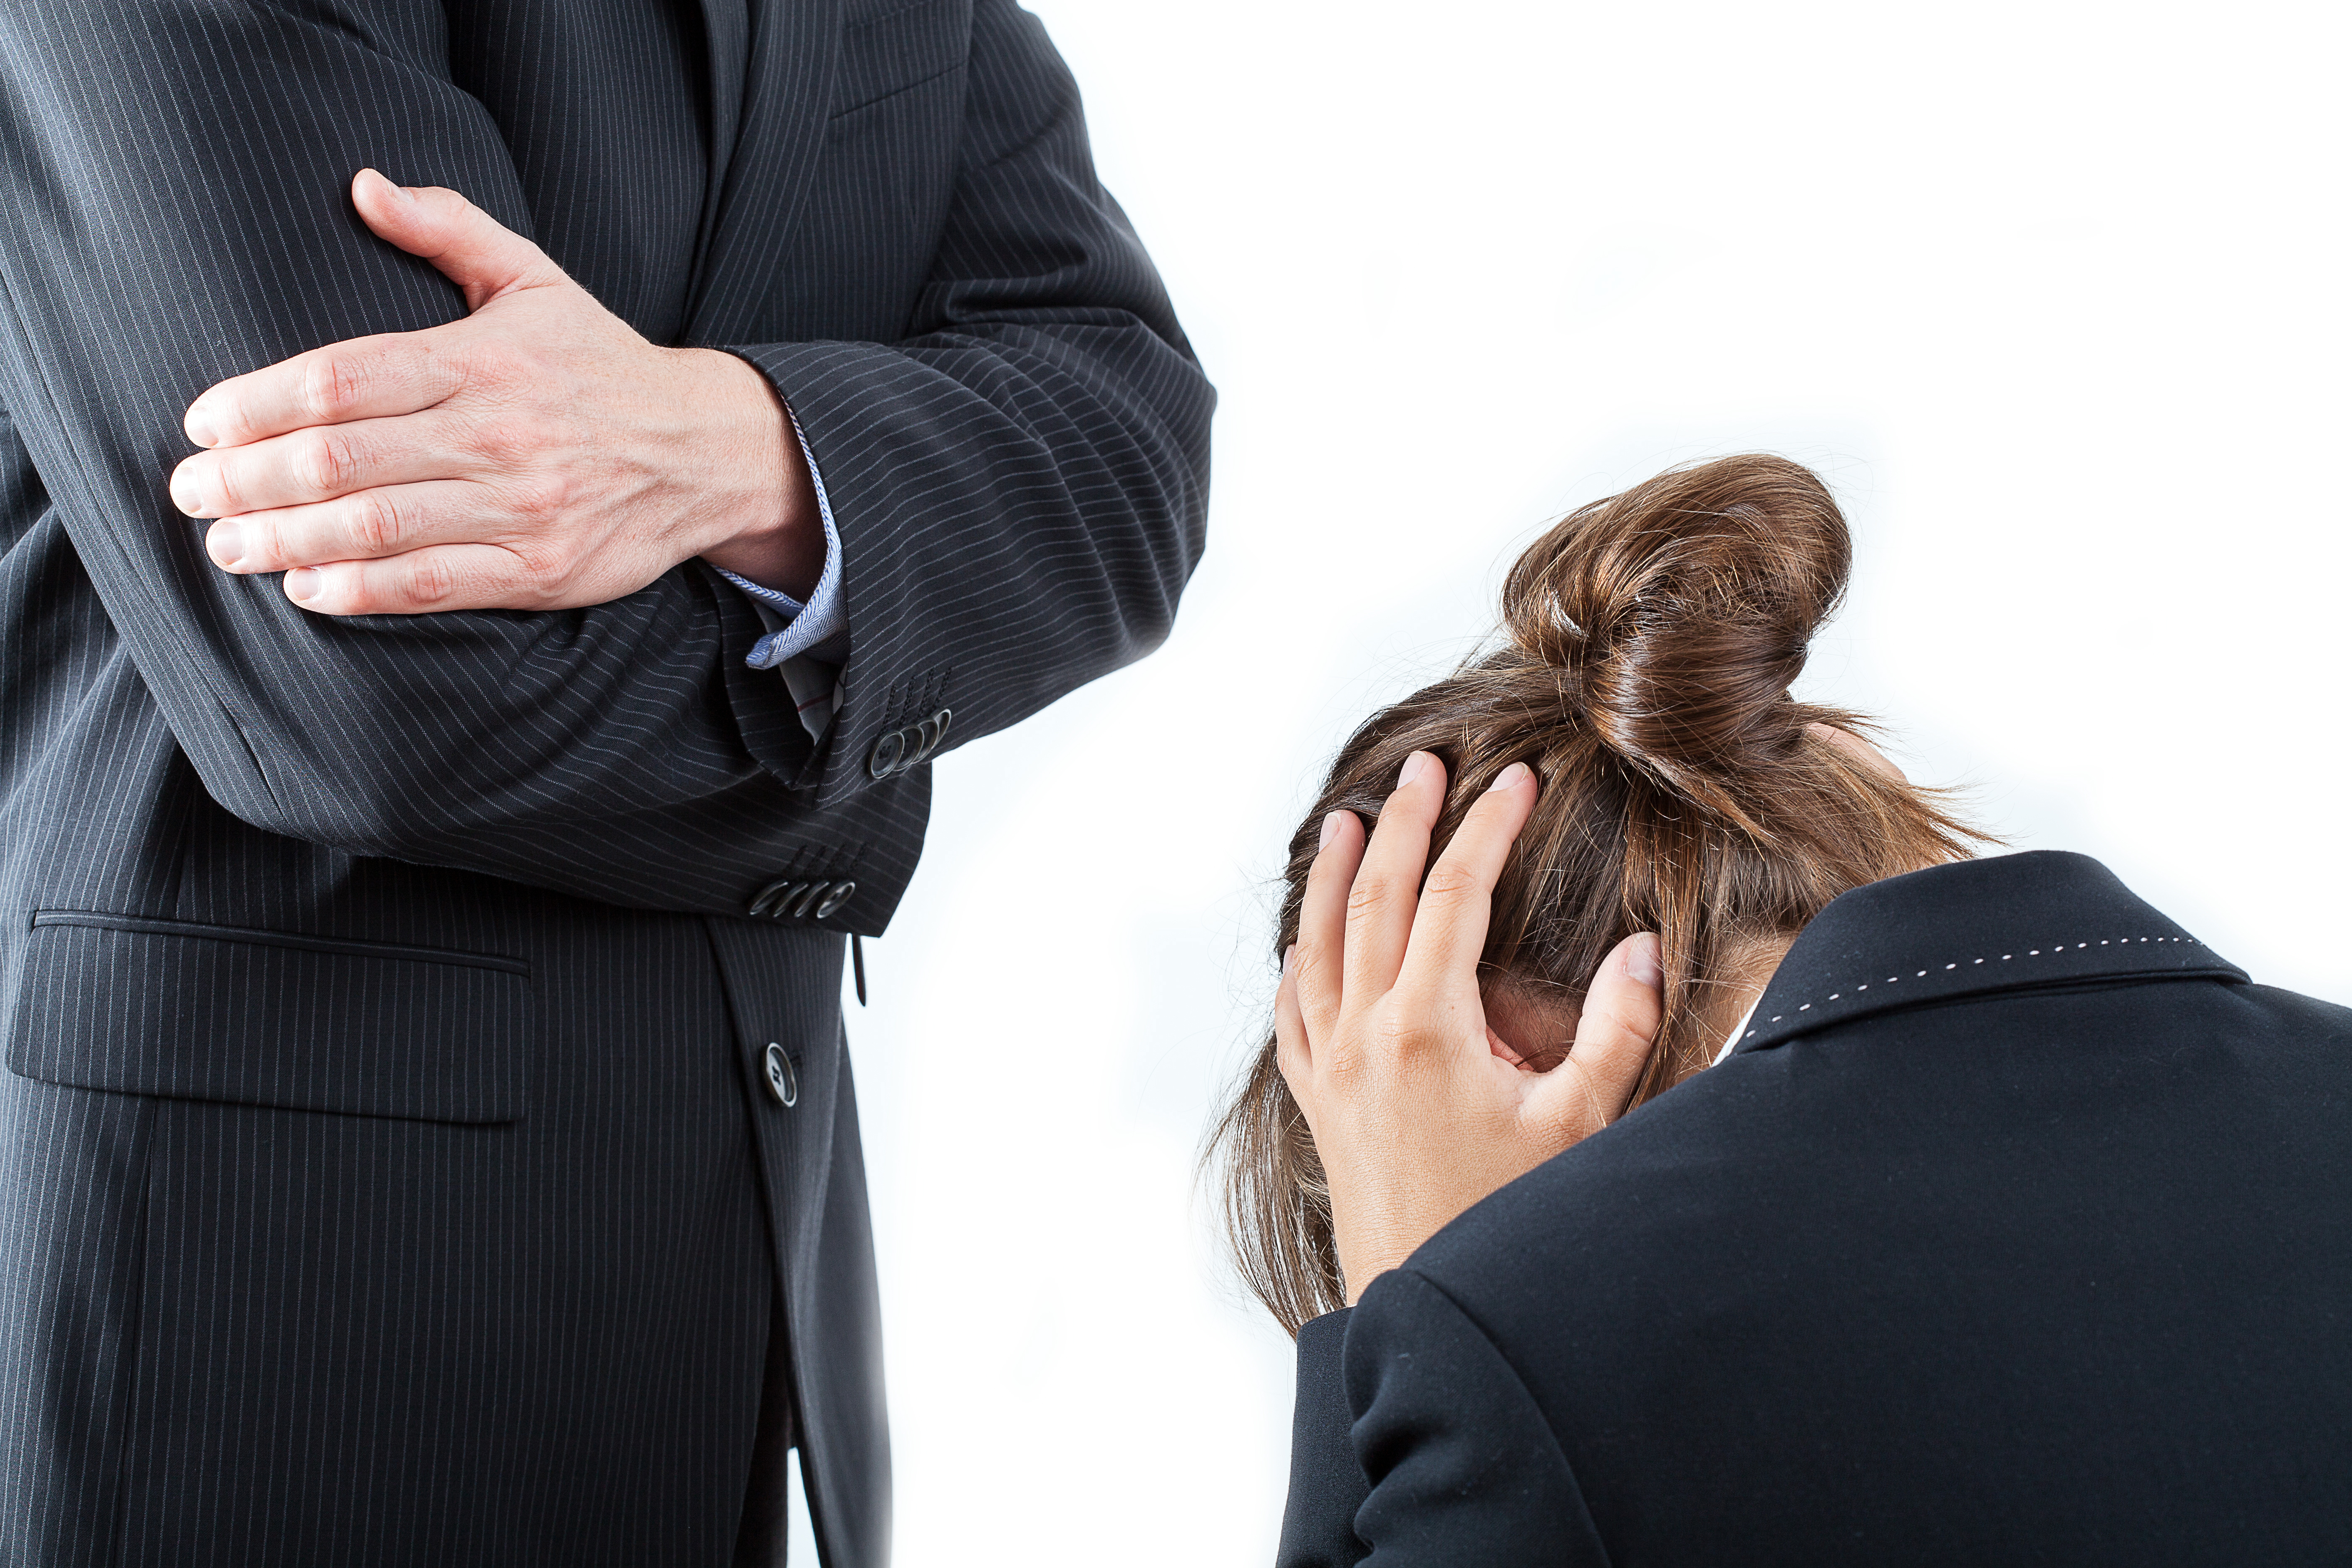 Does intent matter when addressing workplace bullying?